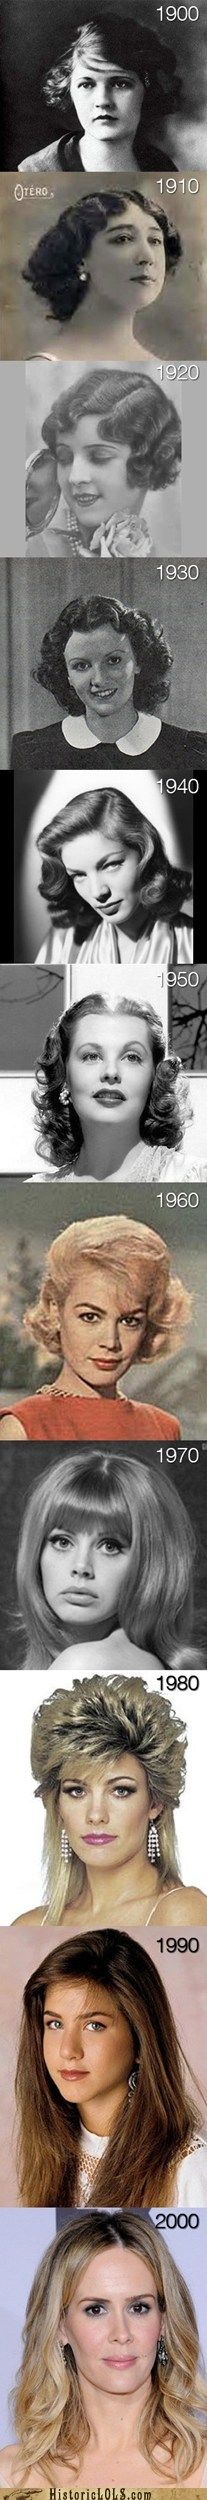 style through the years!